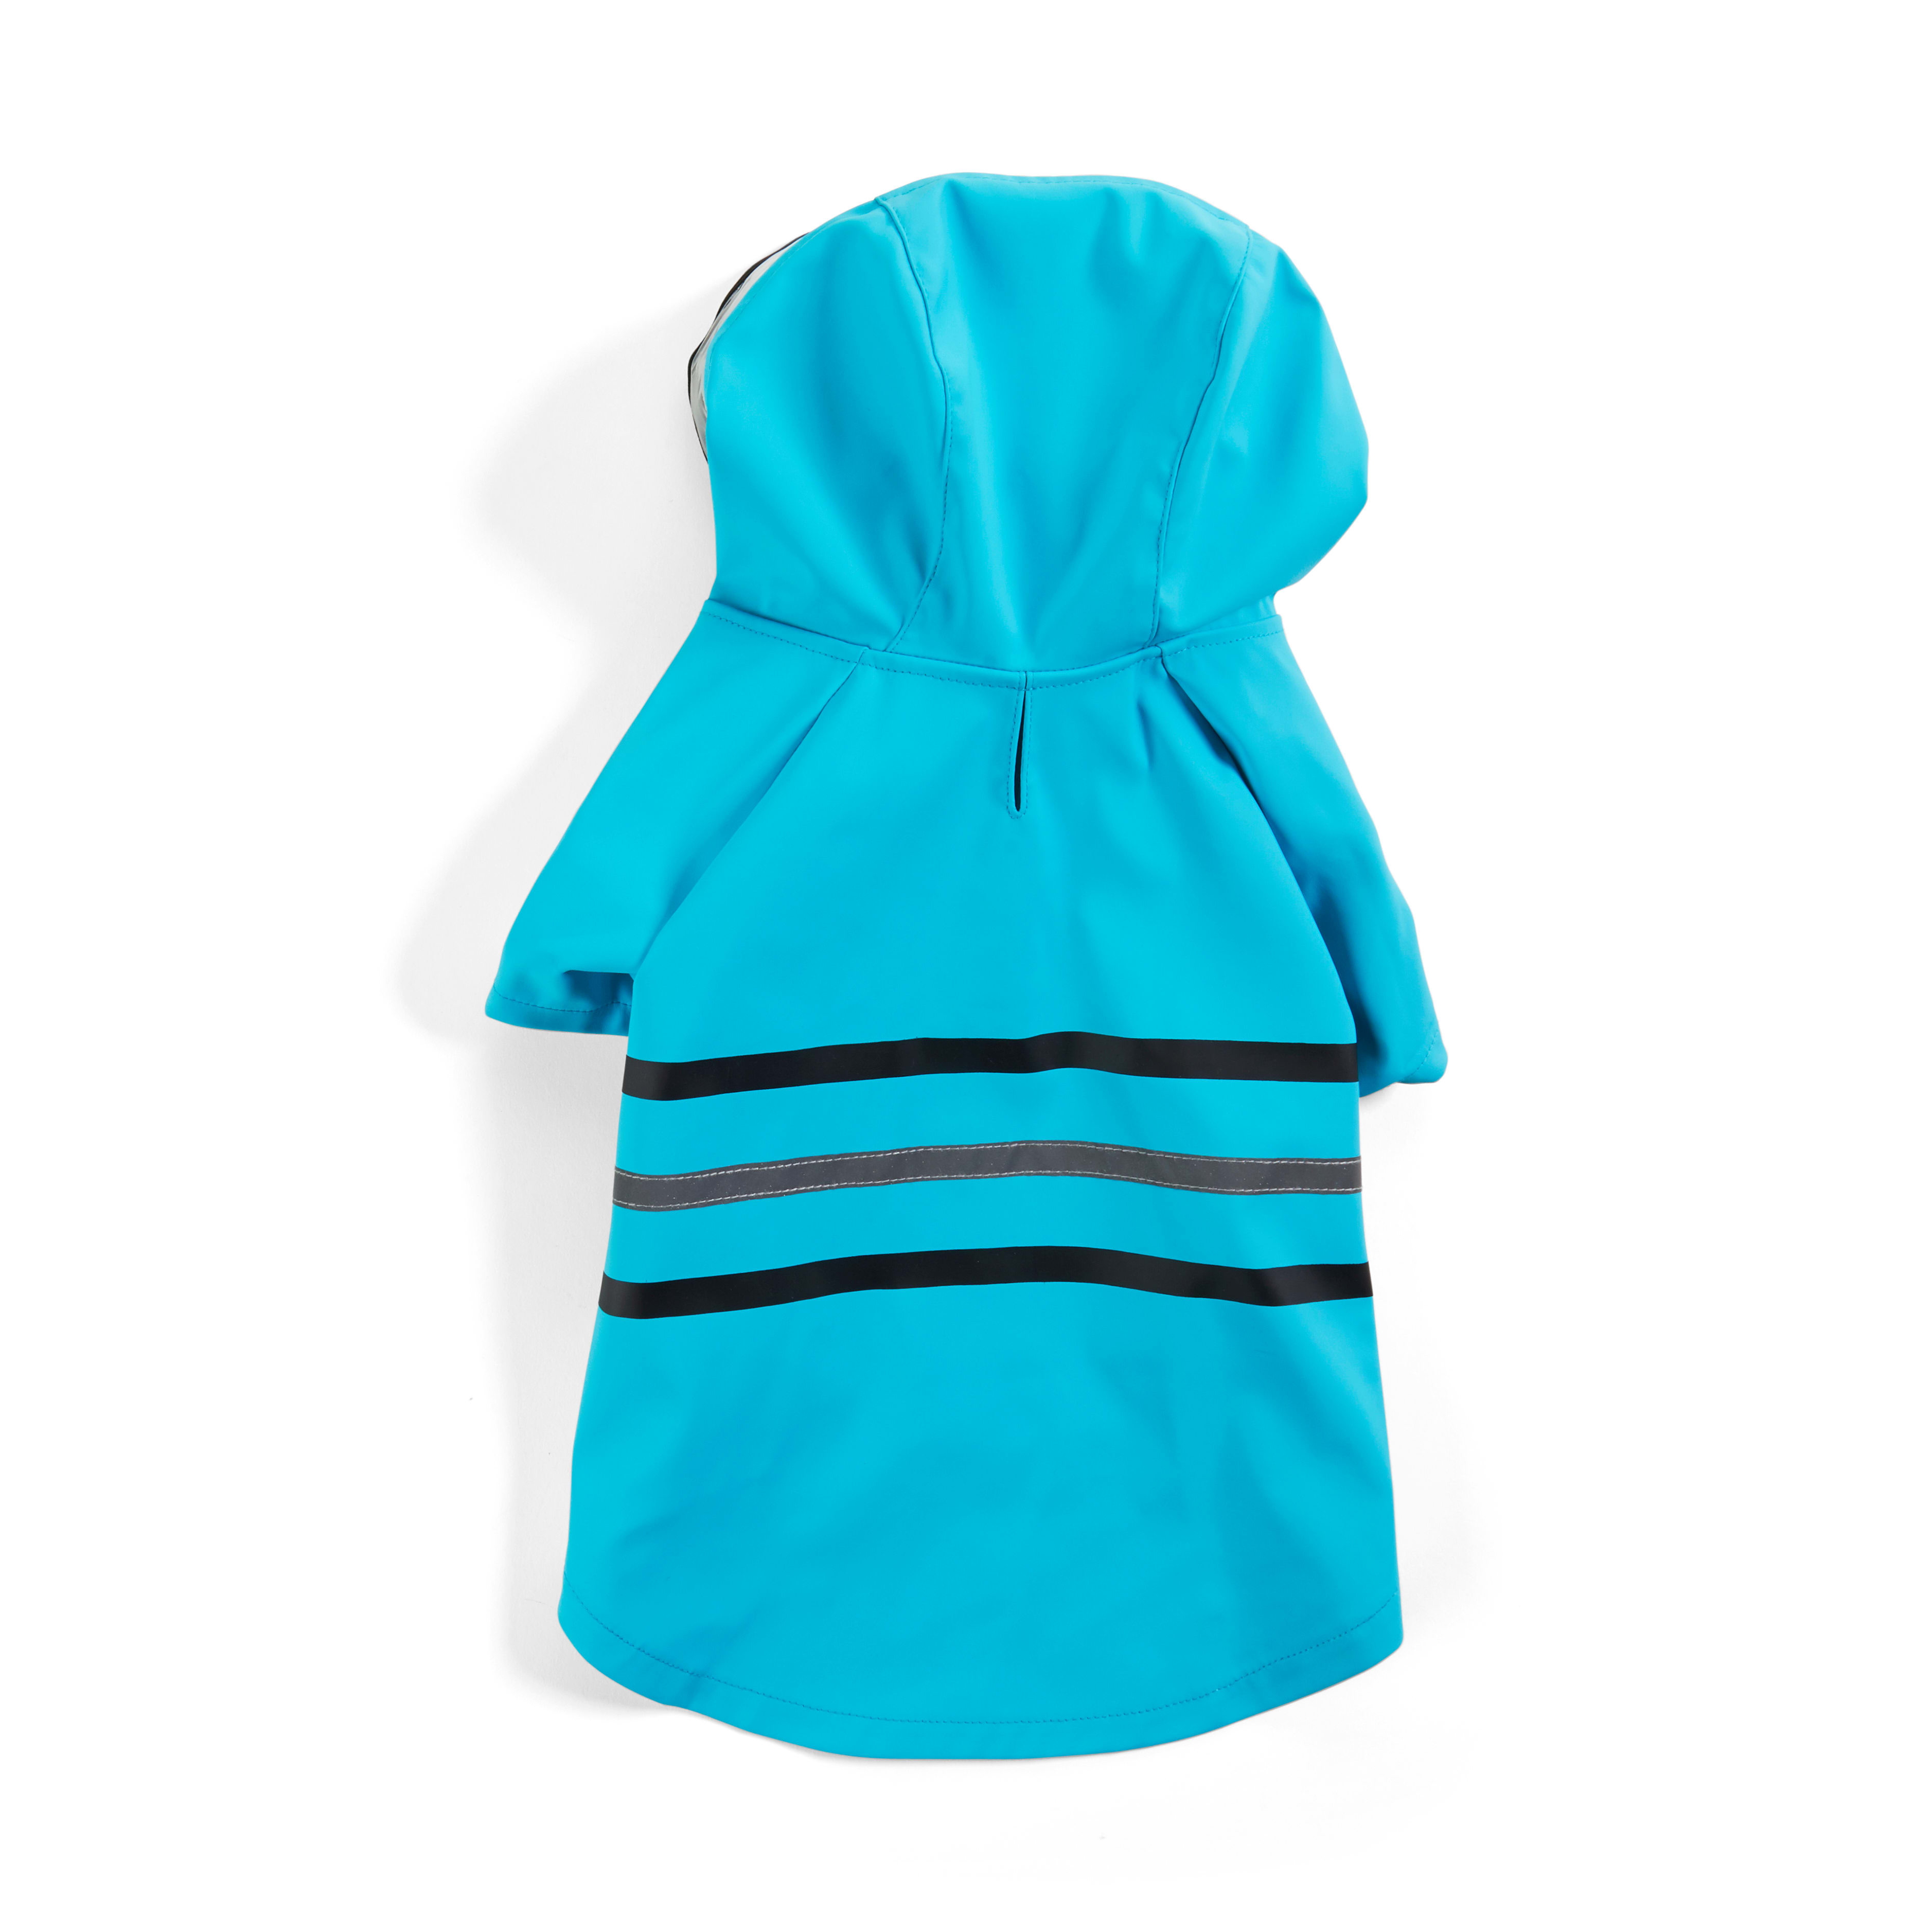 Dog Clothes: Puppy & Dog Outfits & Apparel   Petco